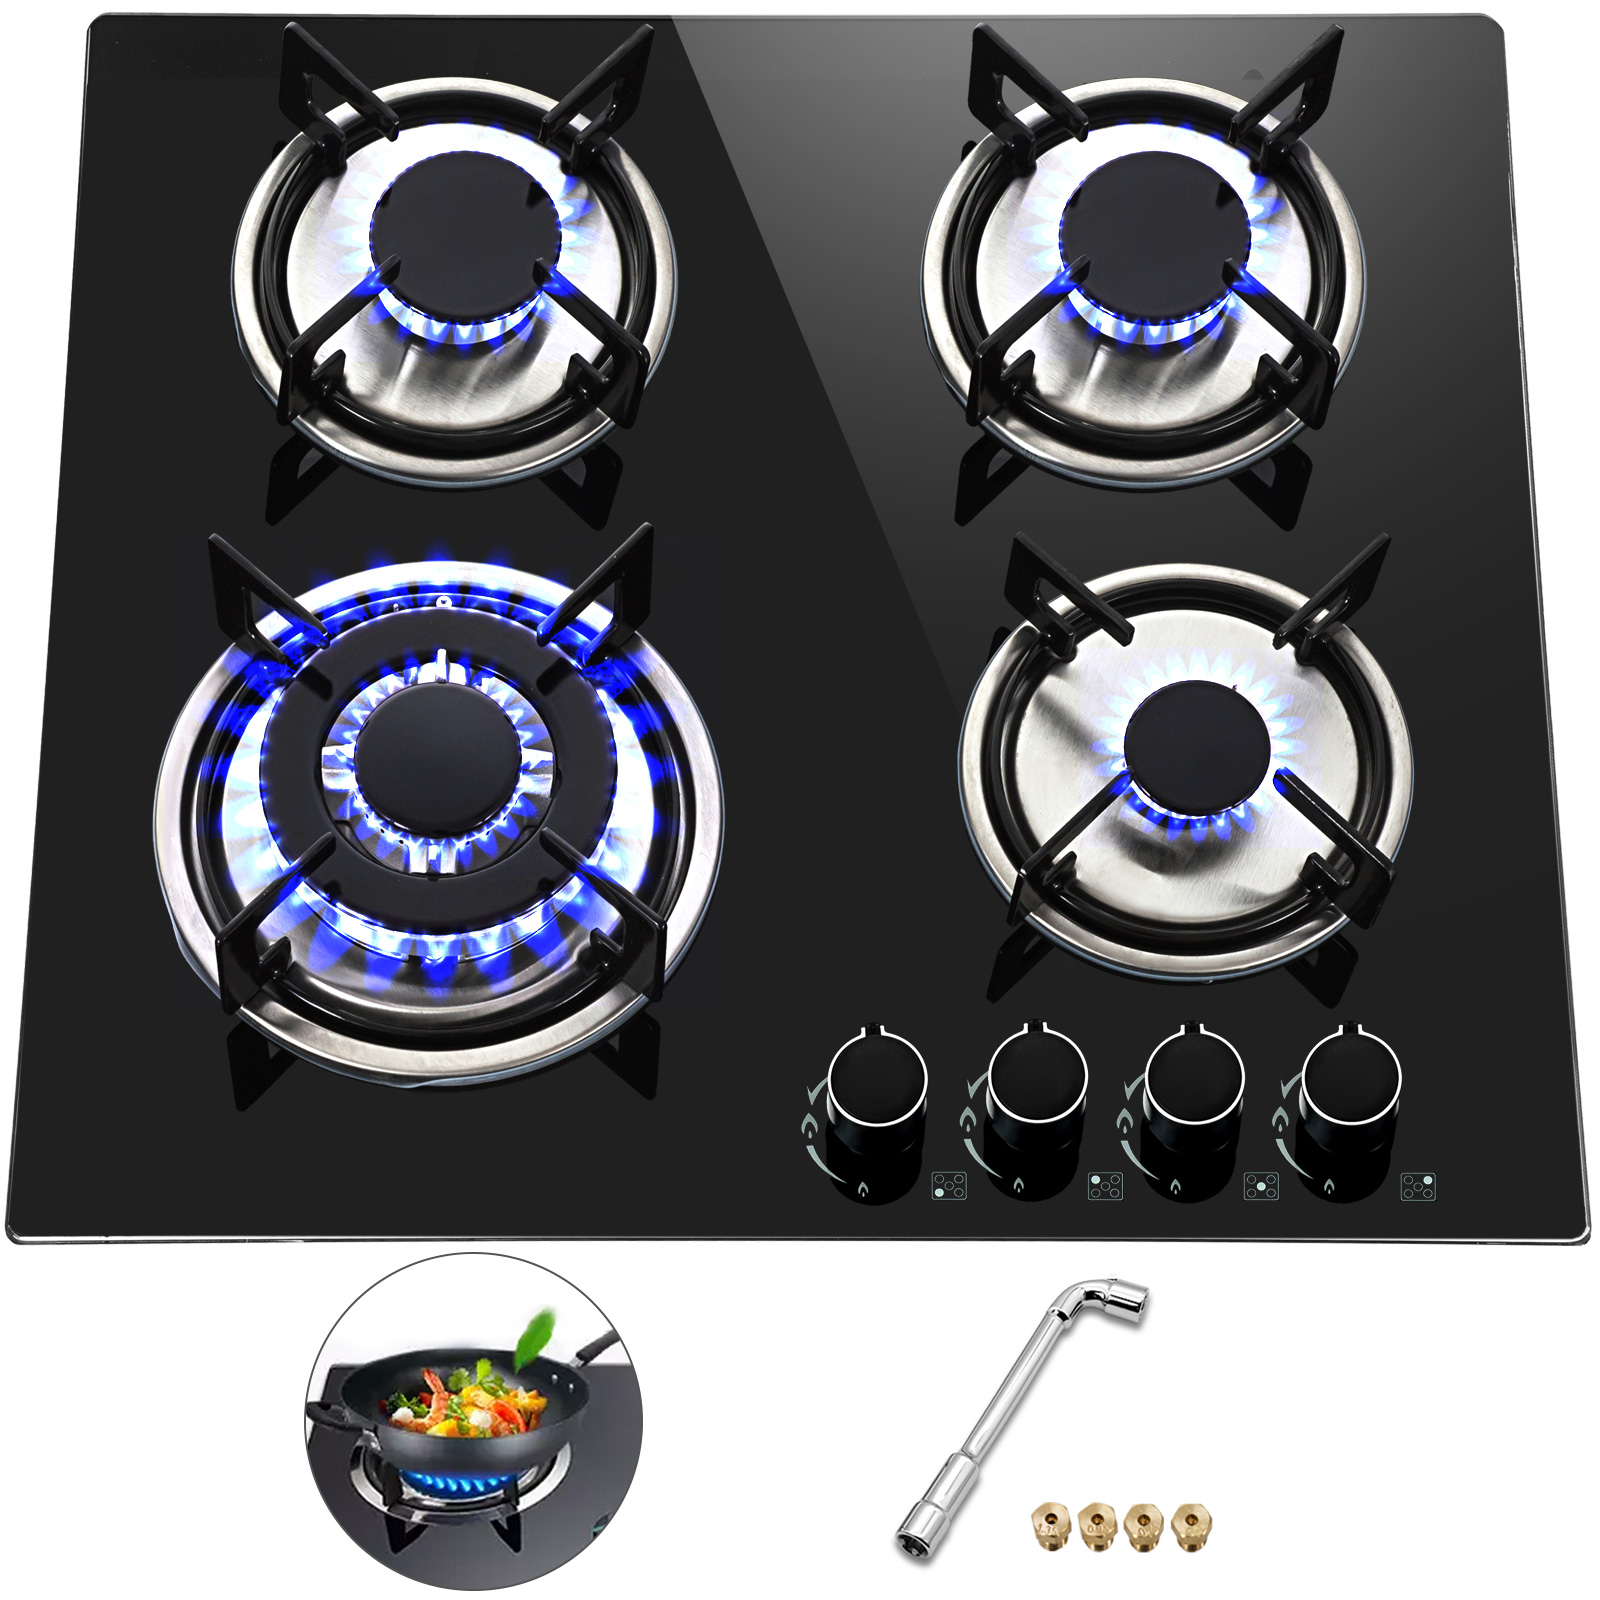 Tempered-Glass-4-Burners-Stove-Gas-Cooktop-iron-grates-LPG-amp-LNG-Gas-St-Steel